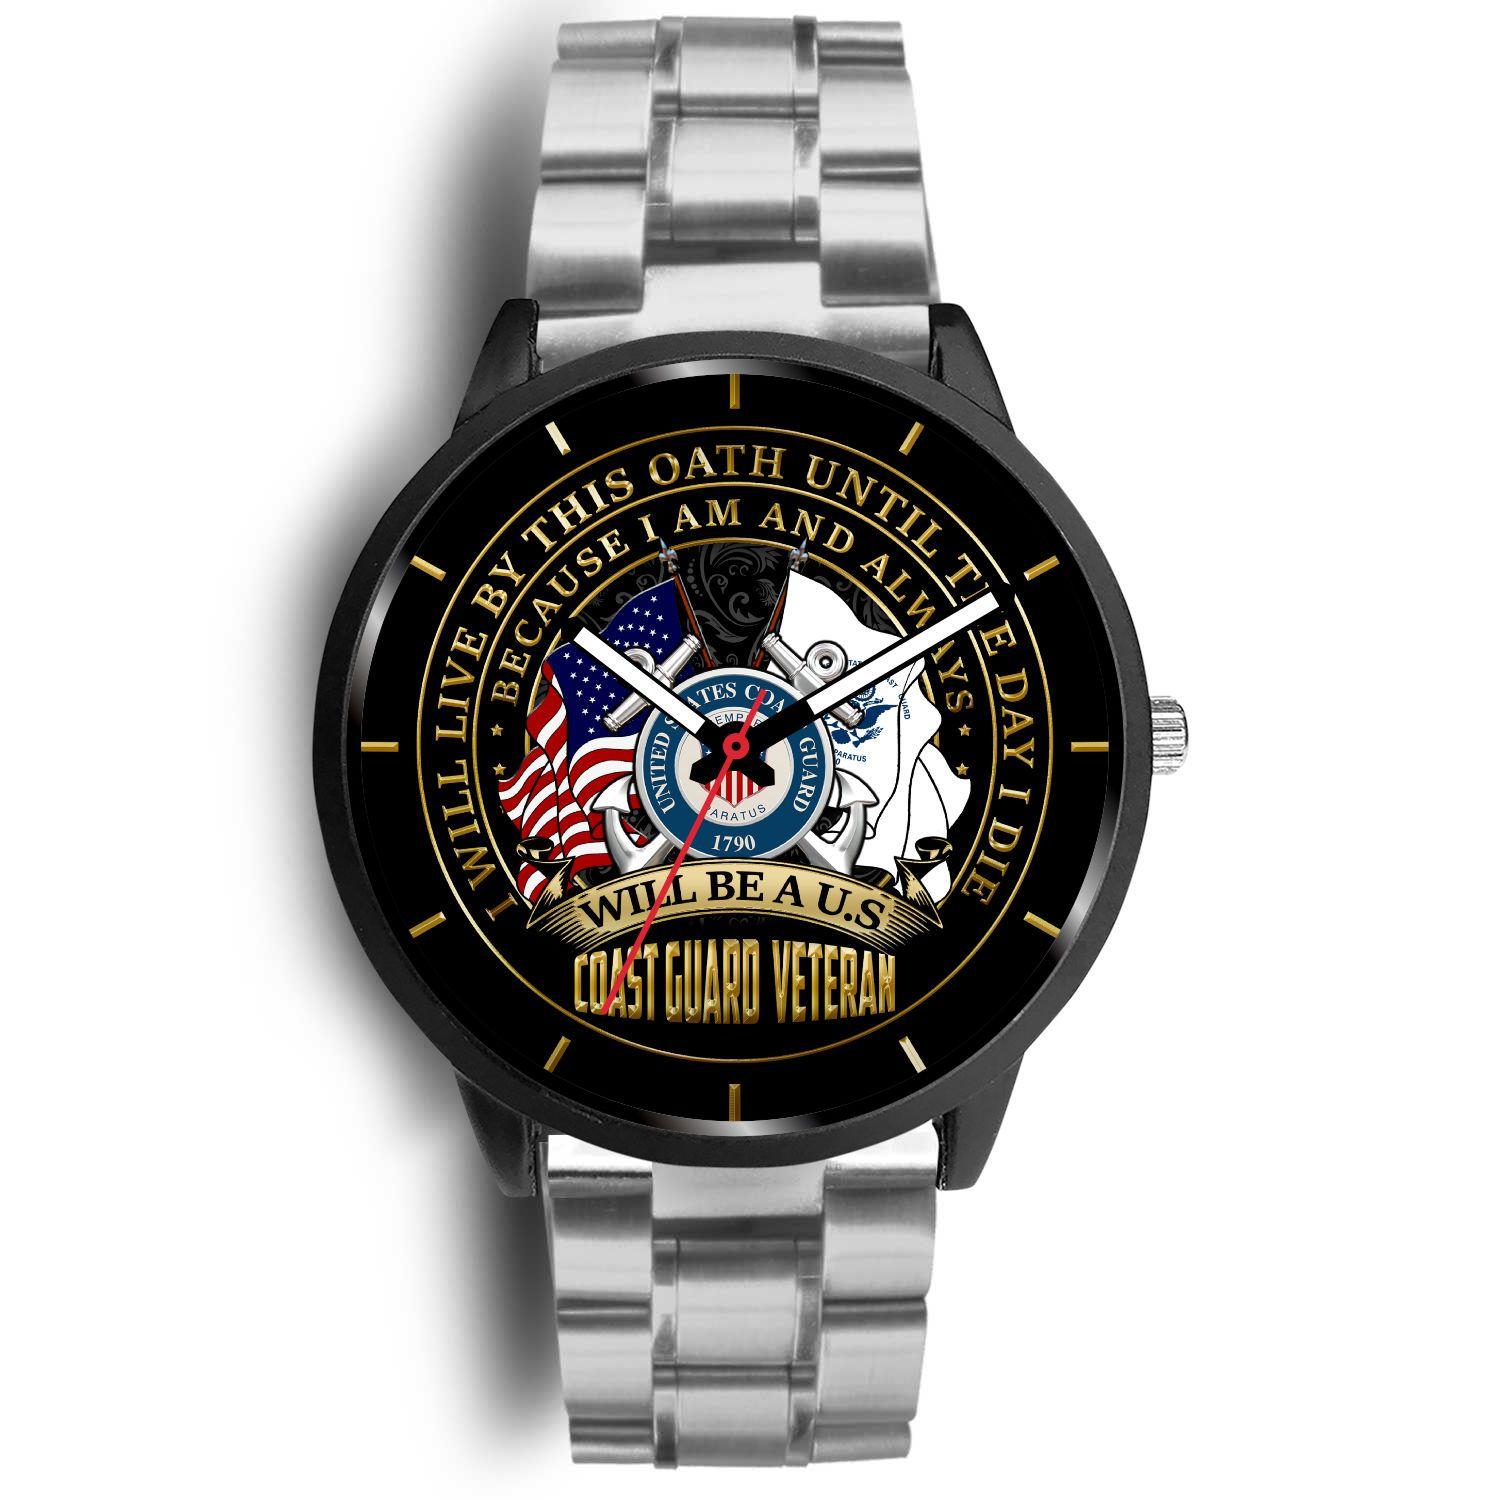 i-will-live_06e8d216-8bab-0352-eaf5-6d0bde3acbf7 I WILL LIVE BY THIS OATH UNTIL THE DAY I DIE BECAUSE I AM AND ALWAYS WILL BE A U.S COAST GUARD VETERAN WATCH  %tag